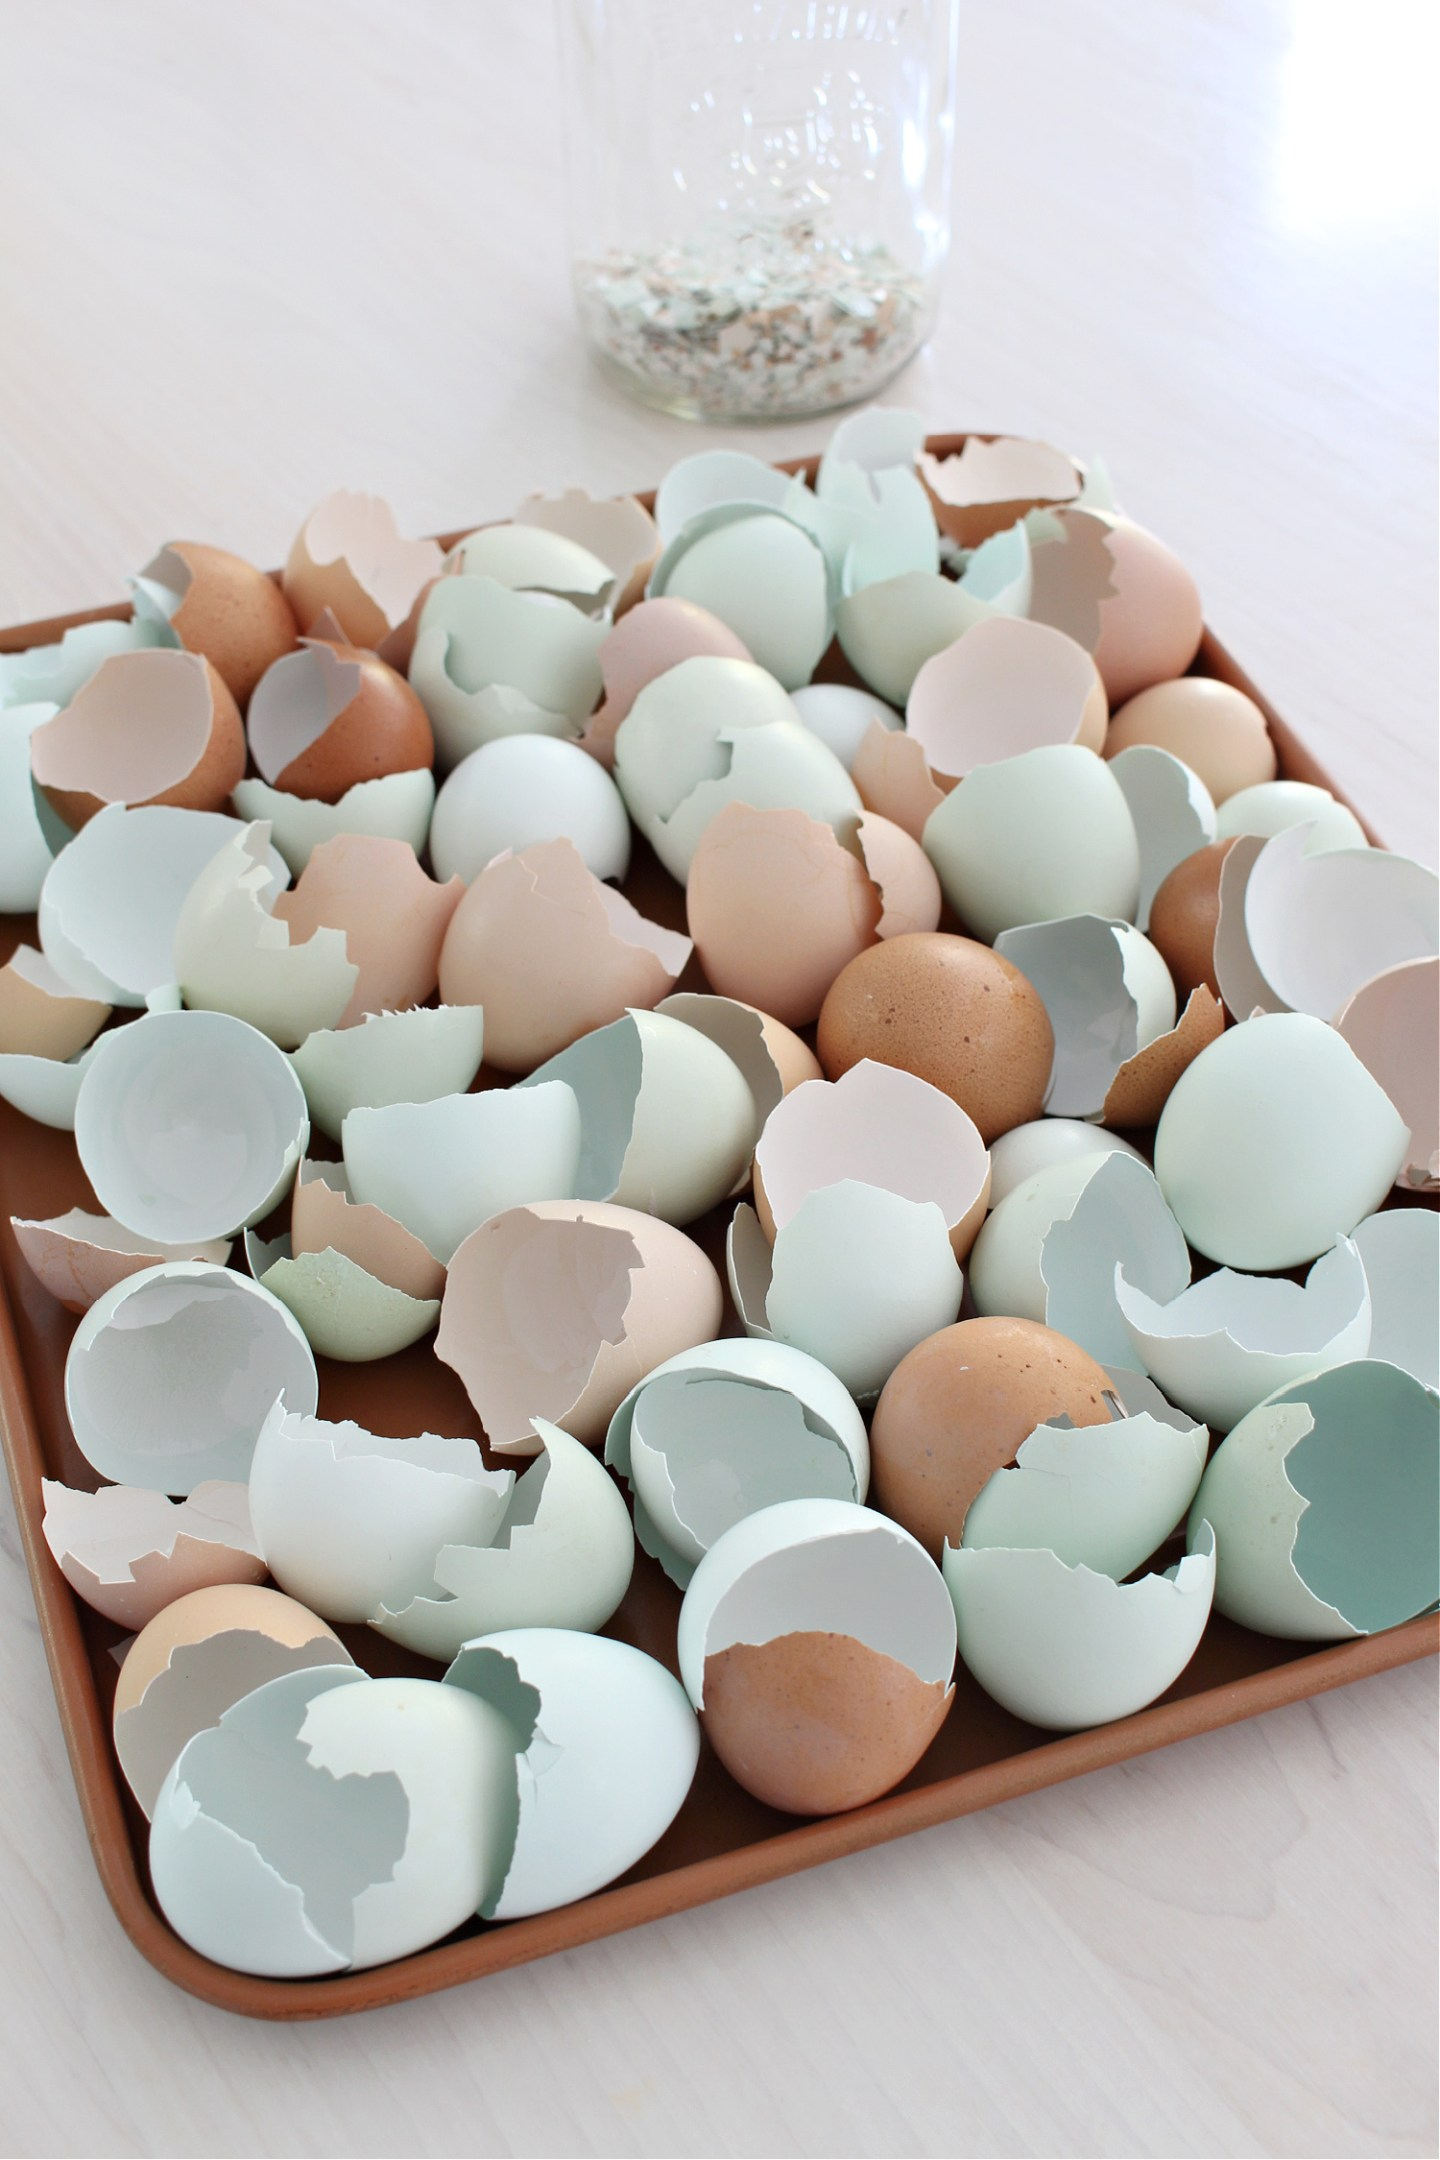 how to bake egg shells to feed to chickens